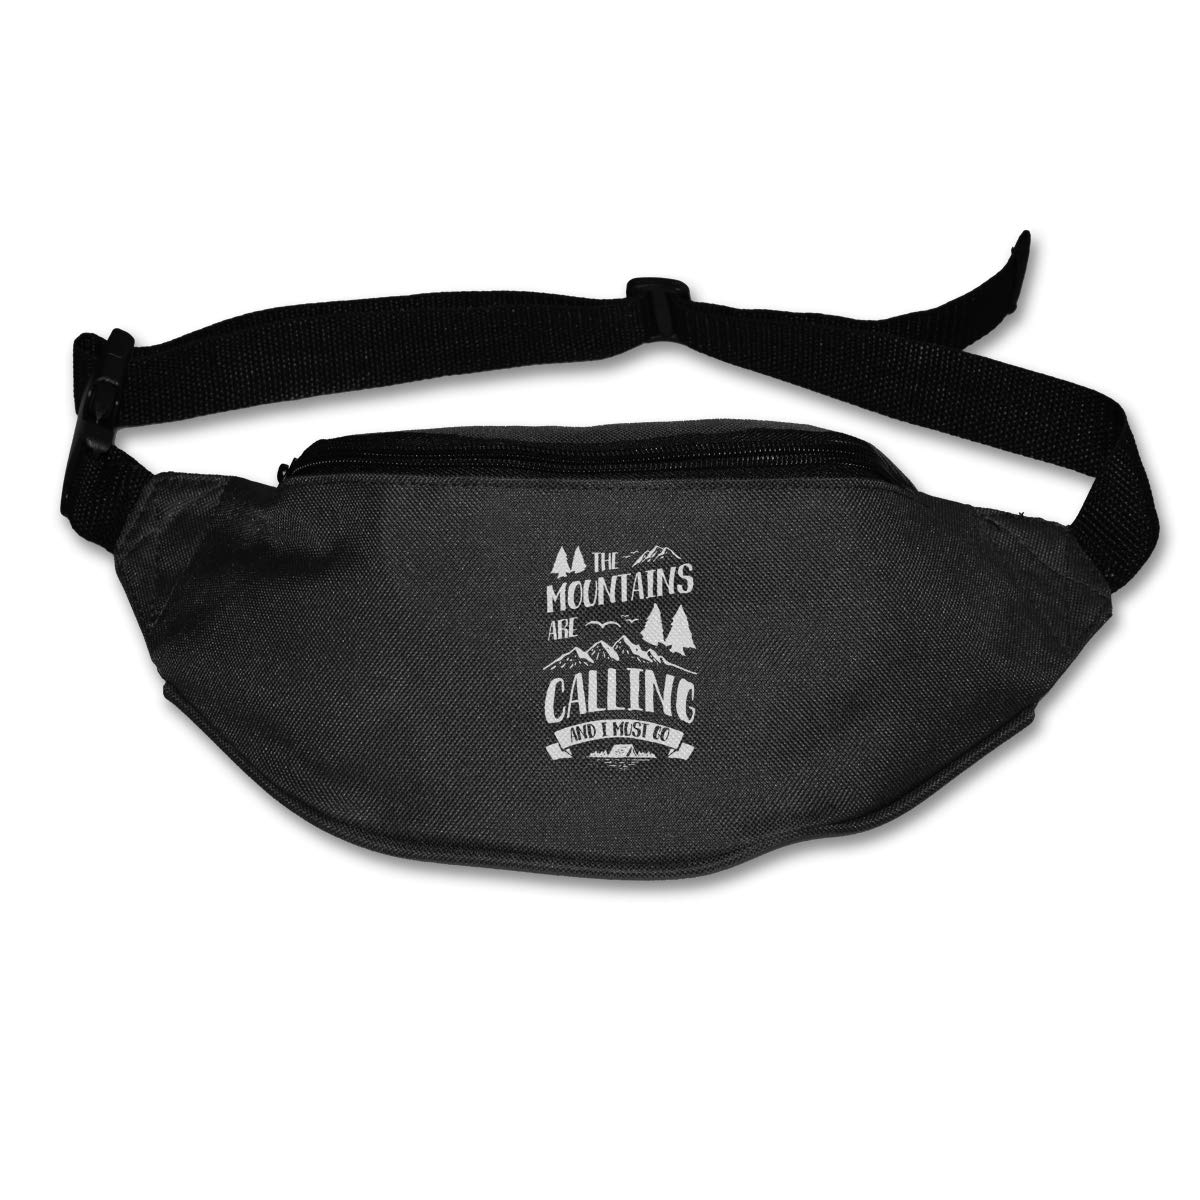 The Mountains Are Calling And I Must Go Waist Packs Fanny Pack For Run